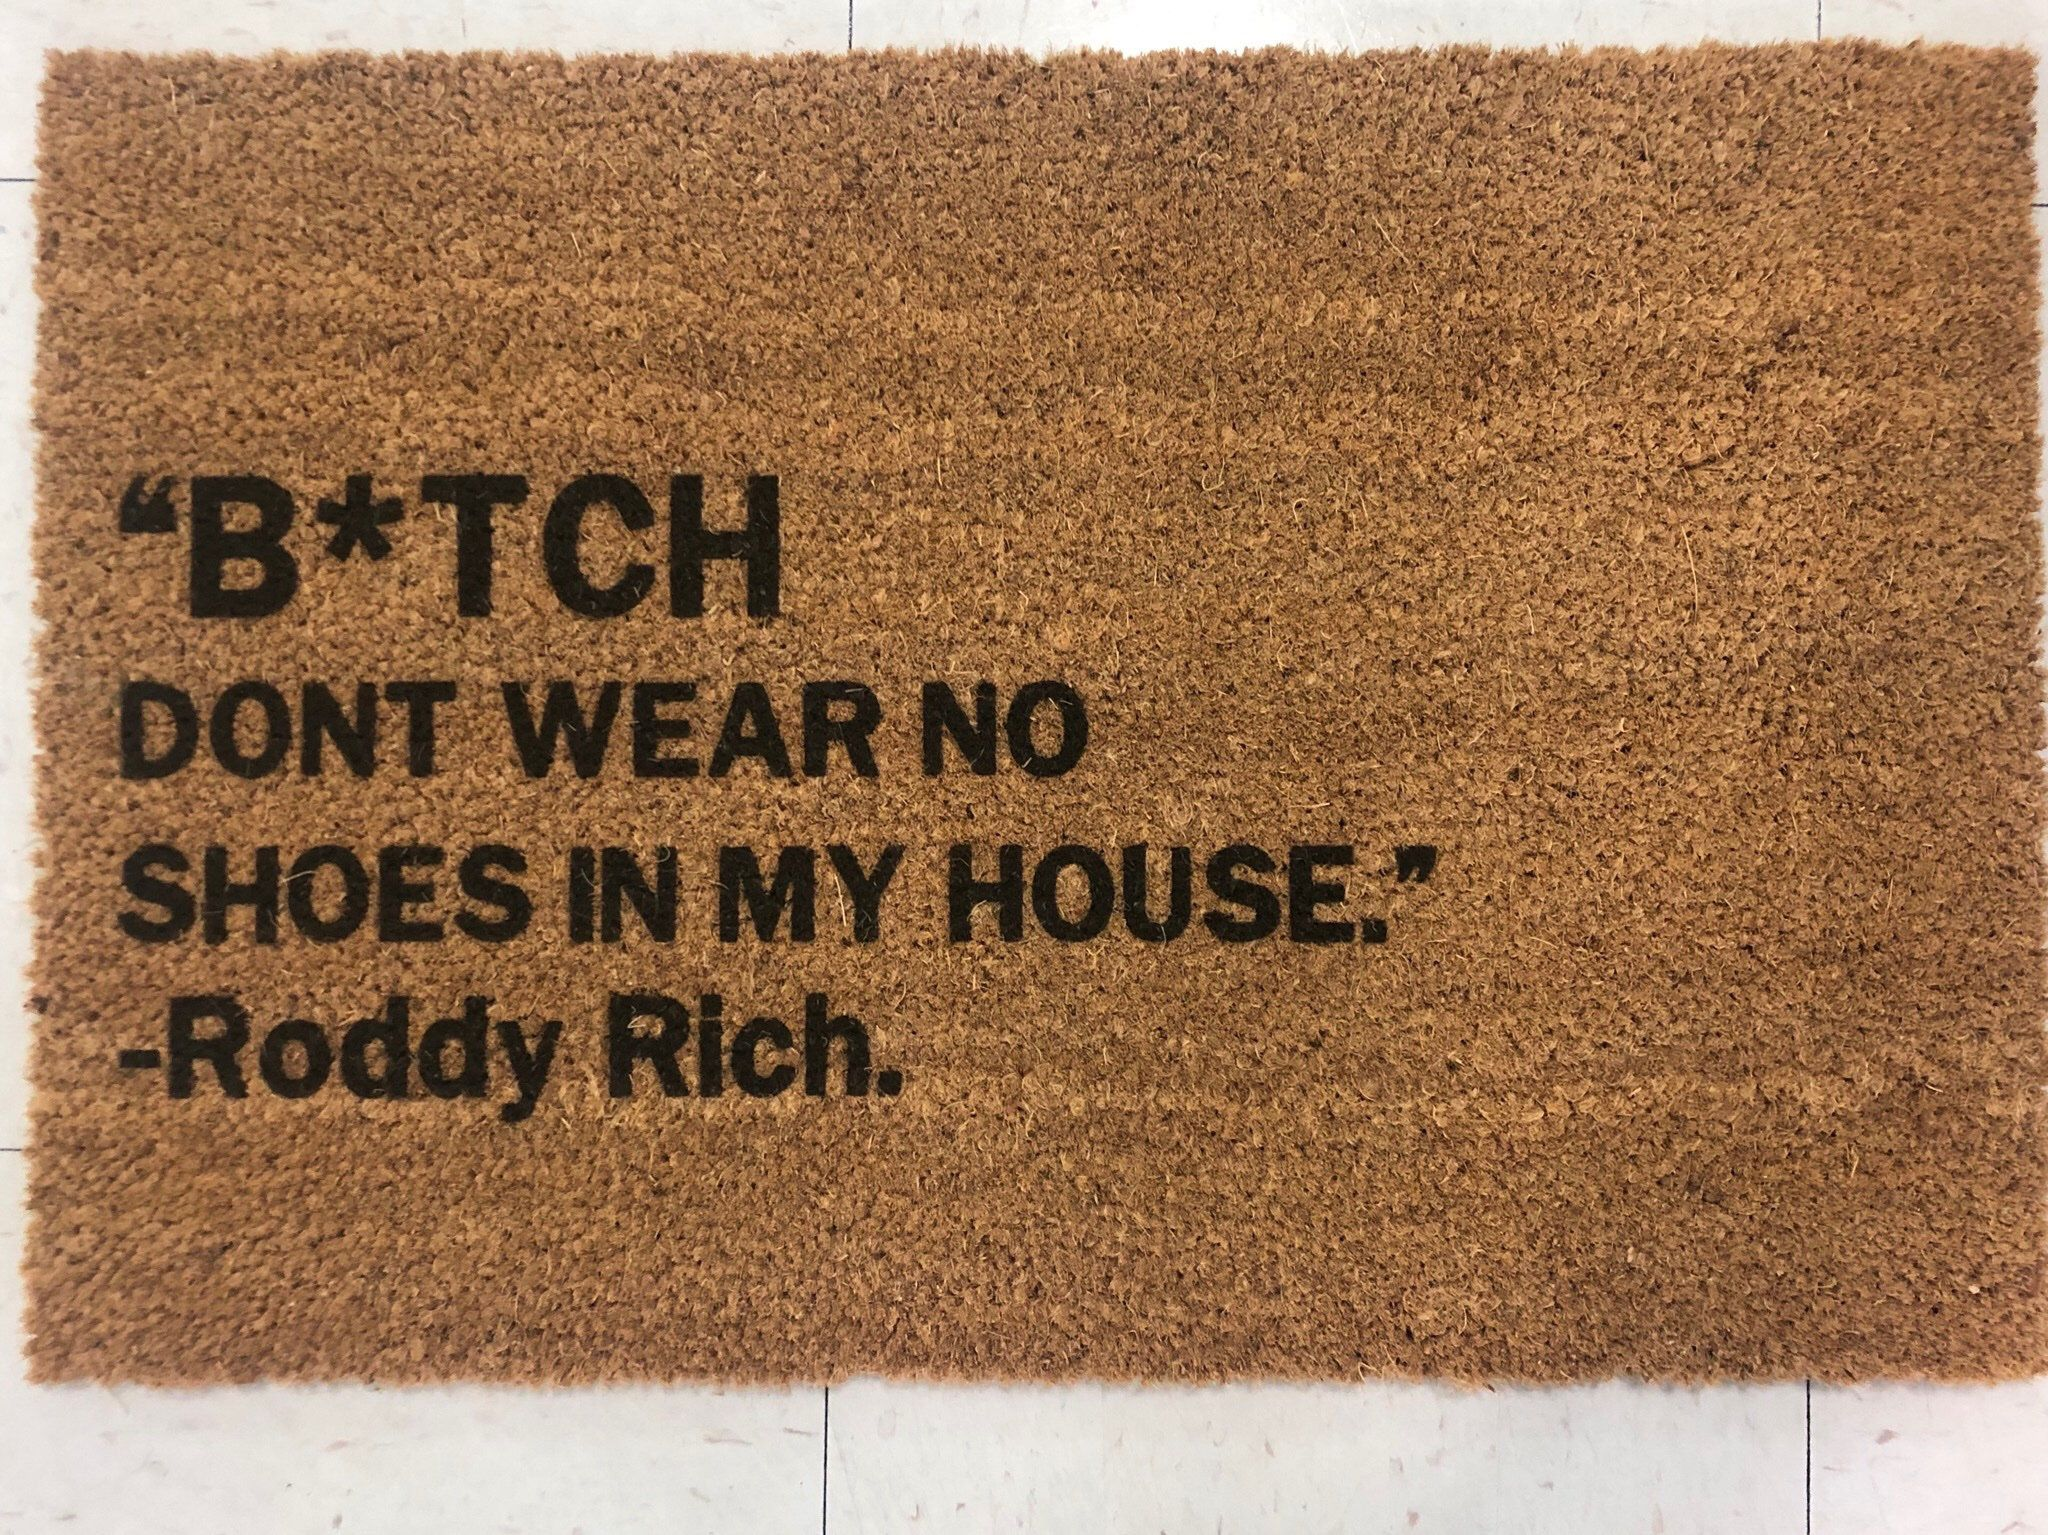 B** DON/'T WEAR NO SHOES IN MY HOUSE Carpet Rug Roddy Ricch